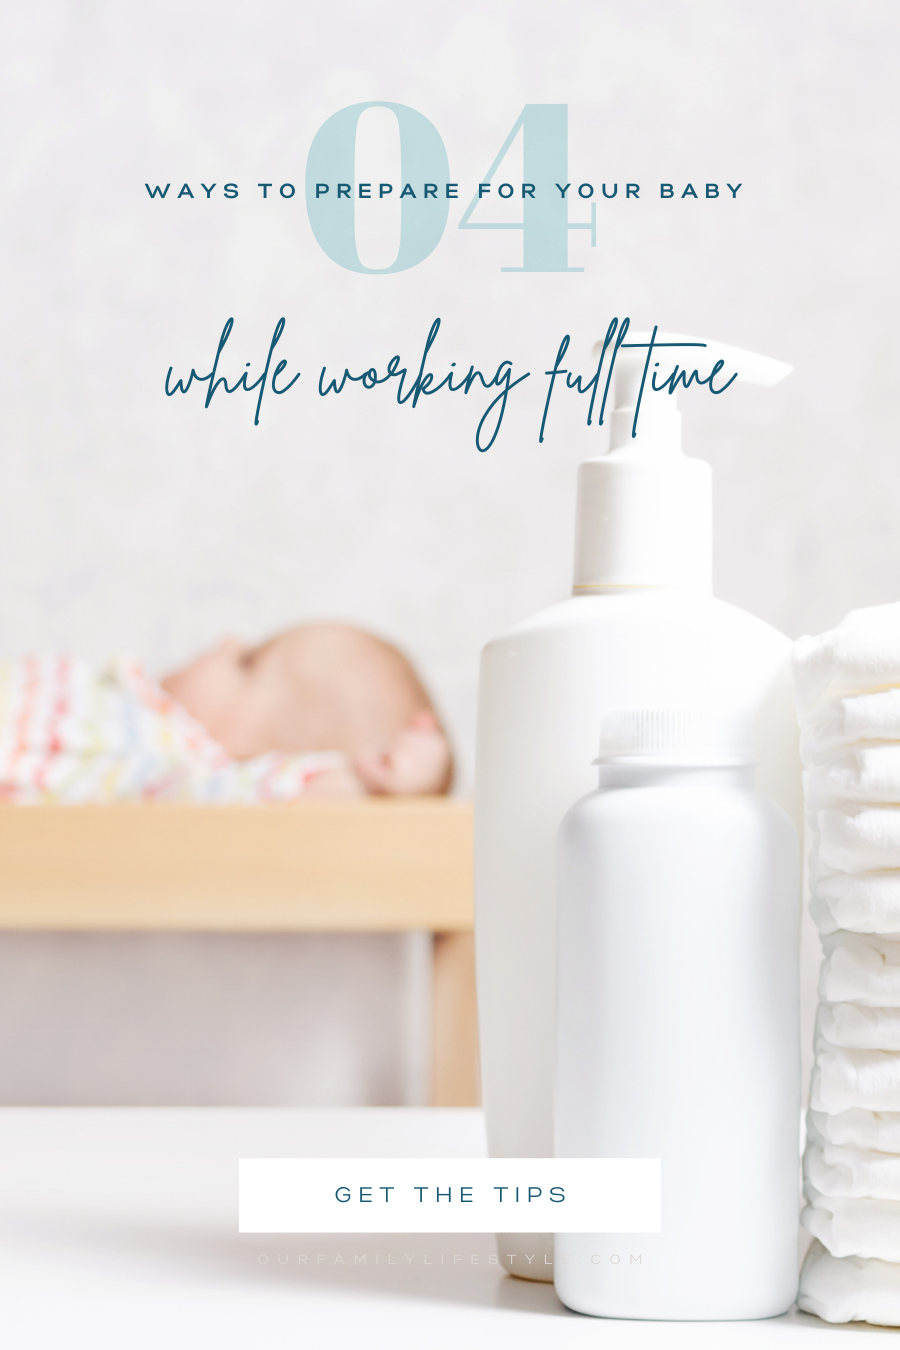 4 Ways to Prepare for the Birth of Your Baby While Working Full Time